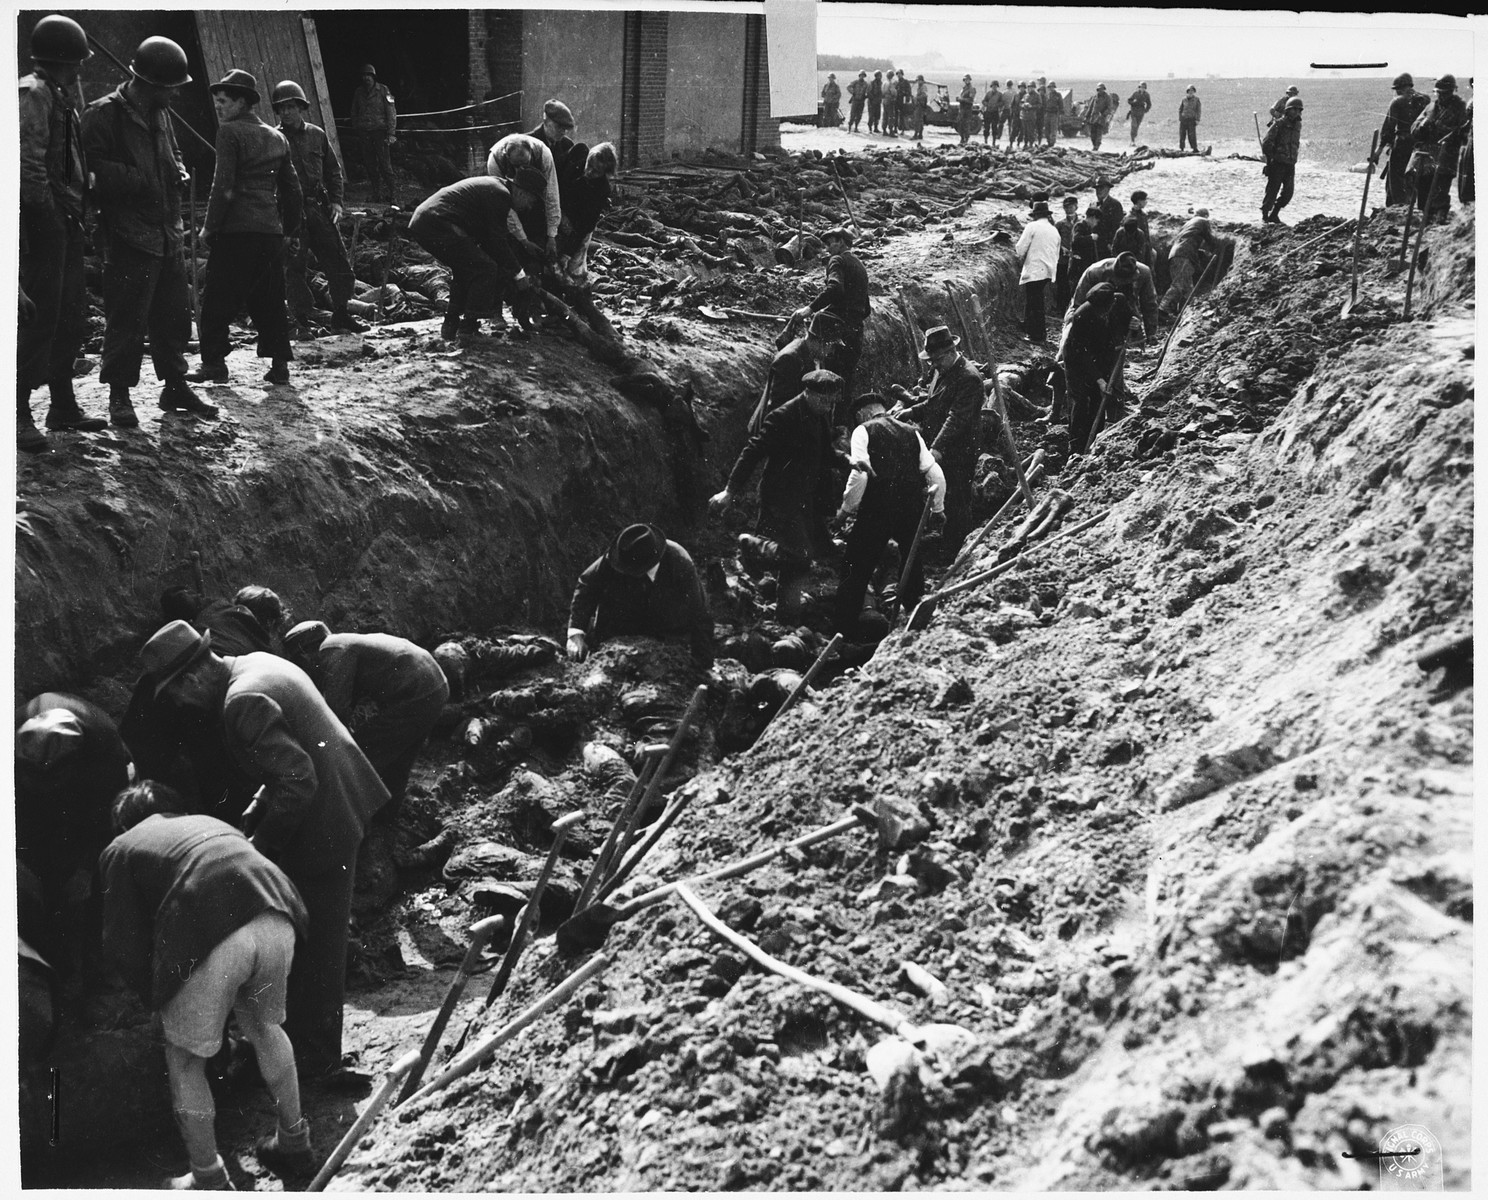 Under the supervision of American soldiers, German civilians exhume a mass grave containing the bodies of prisoners killed by the SS in a barn just outside Gardelegen.